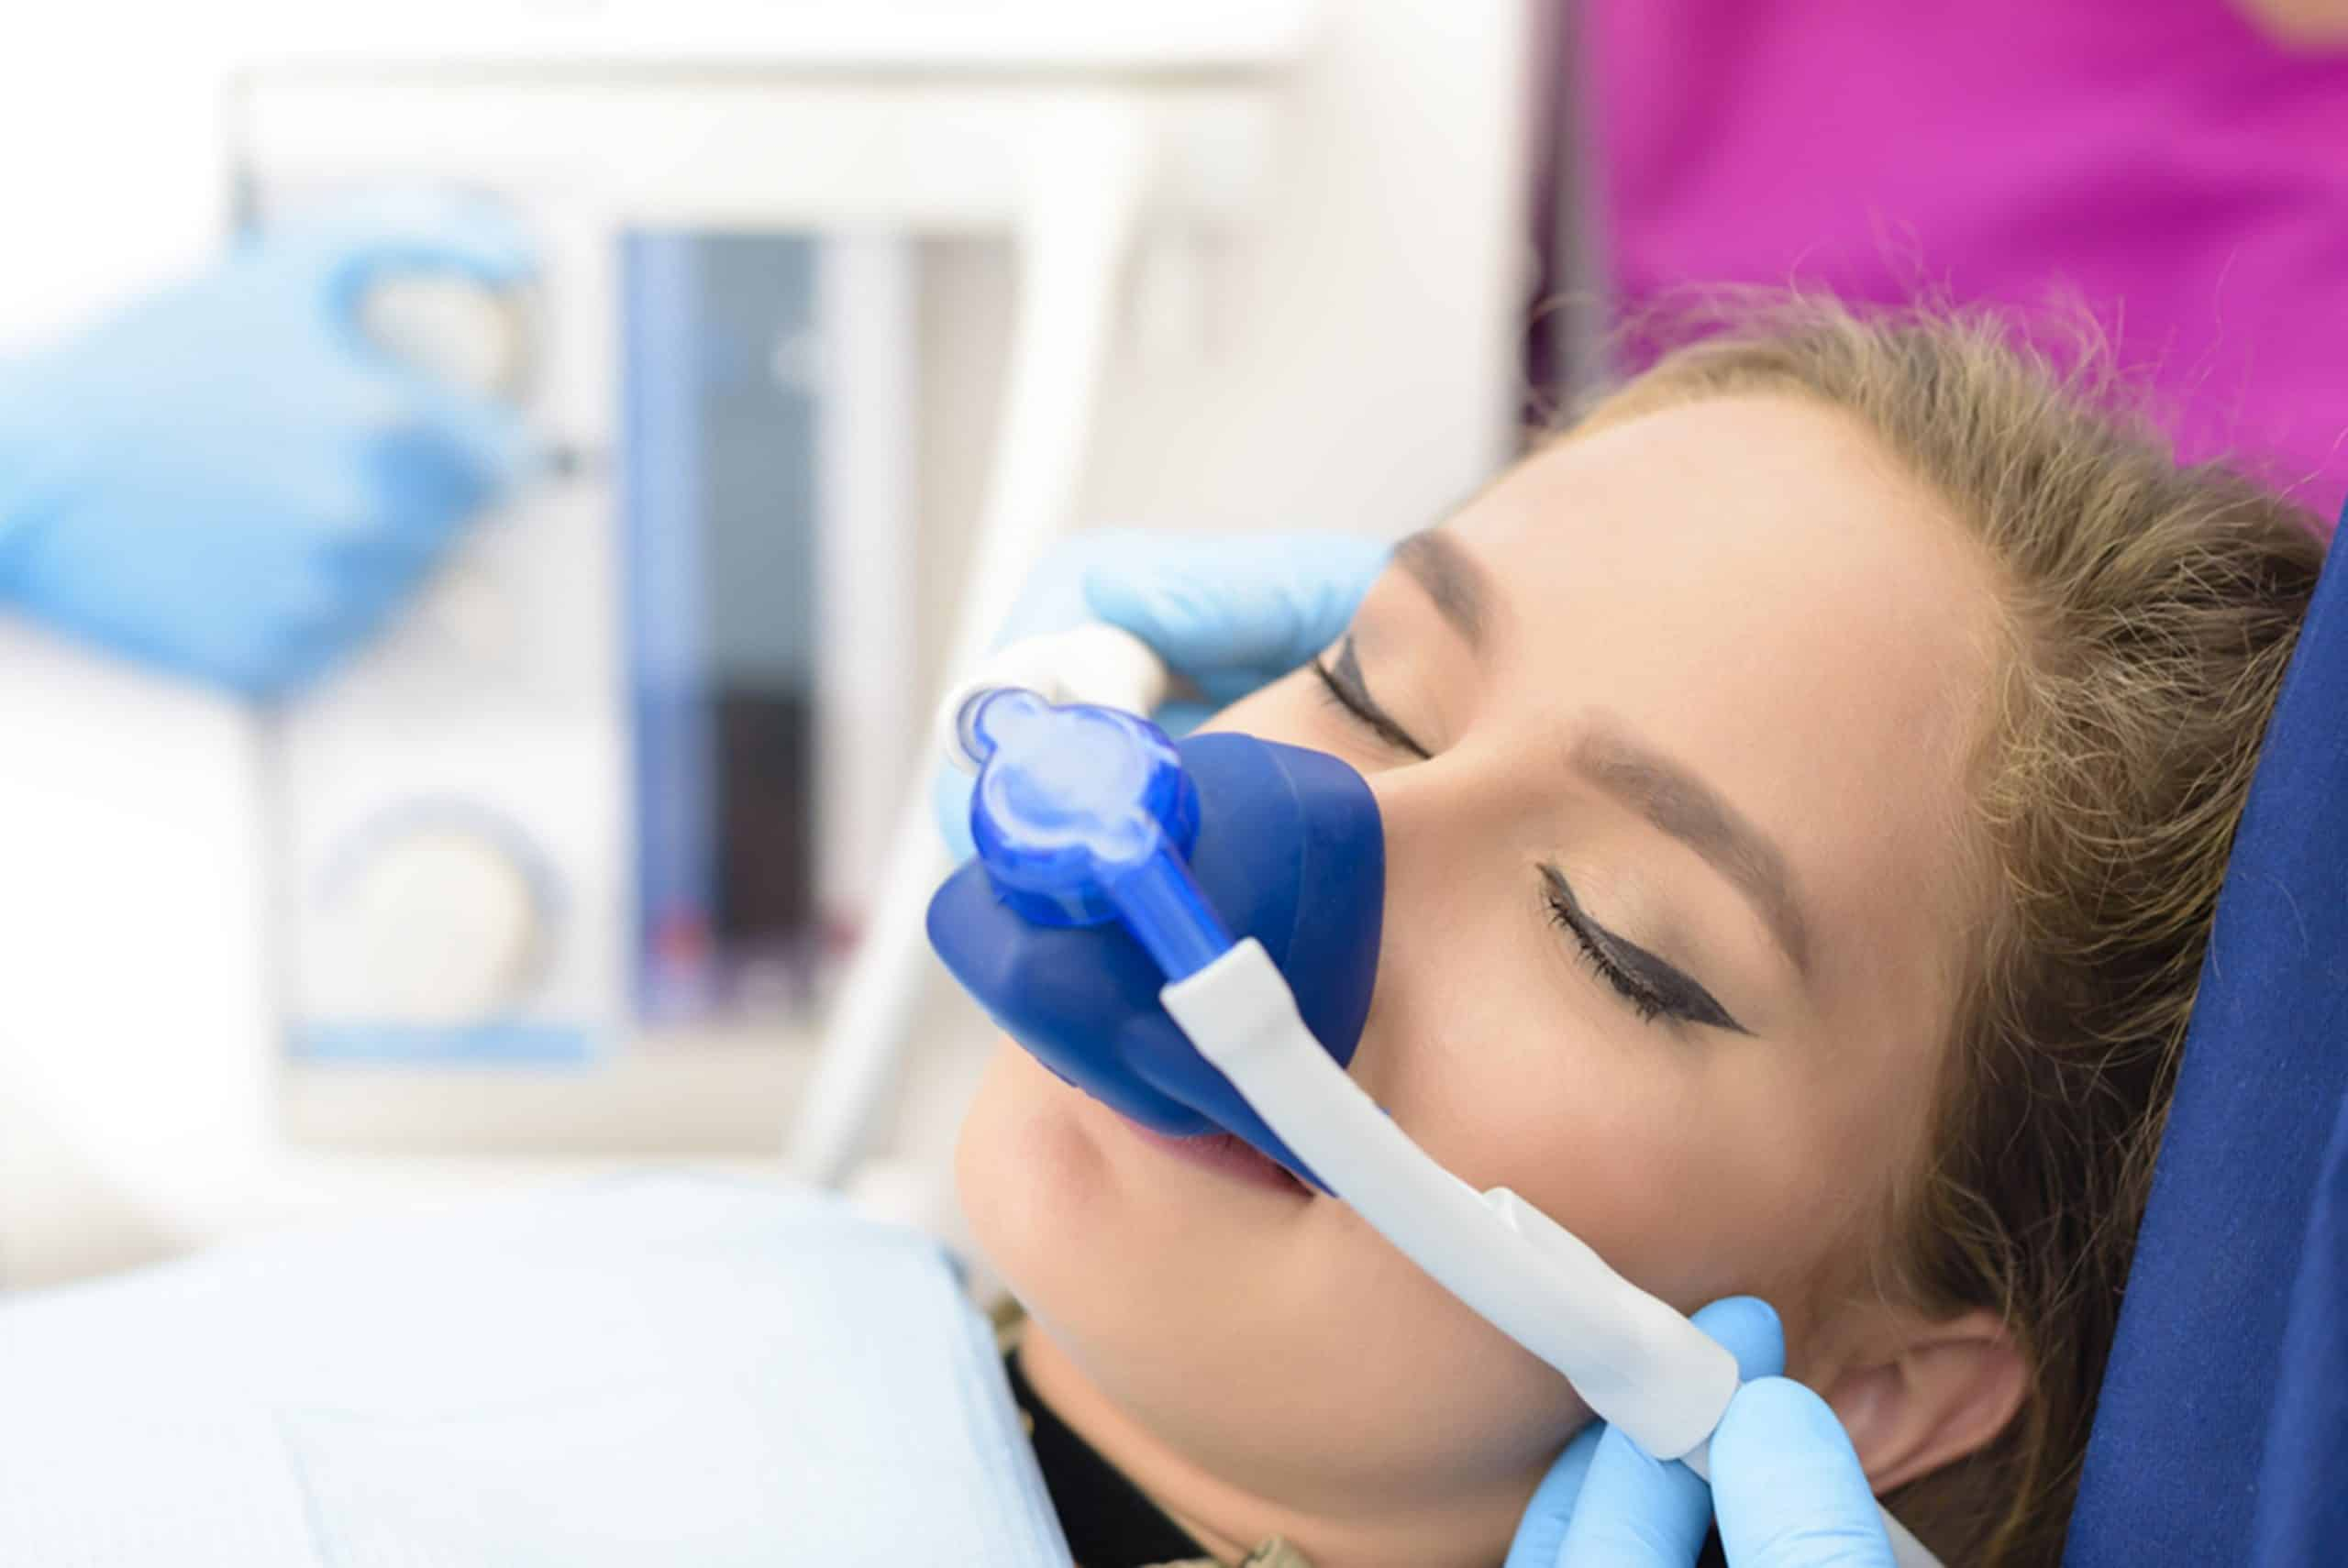 sedation dentistry a solution for dental anxiety